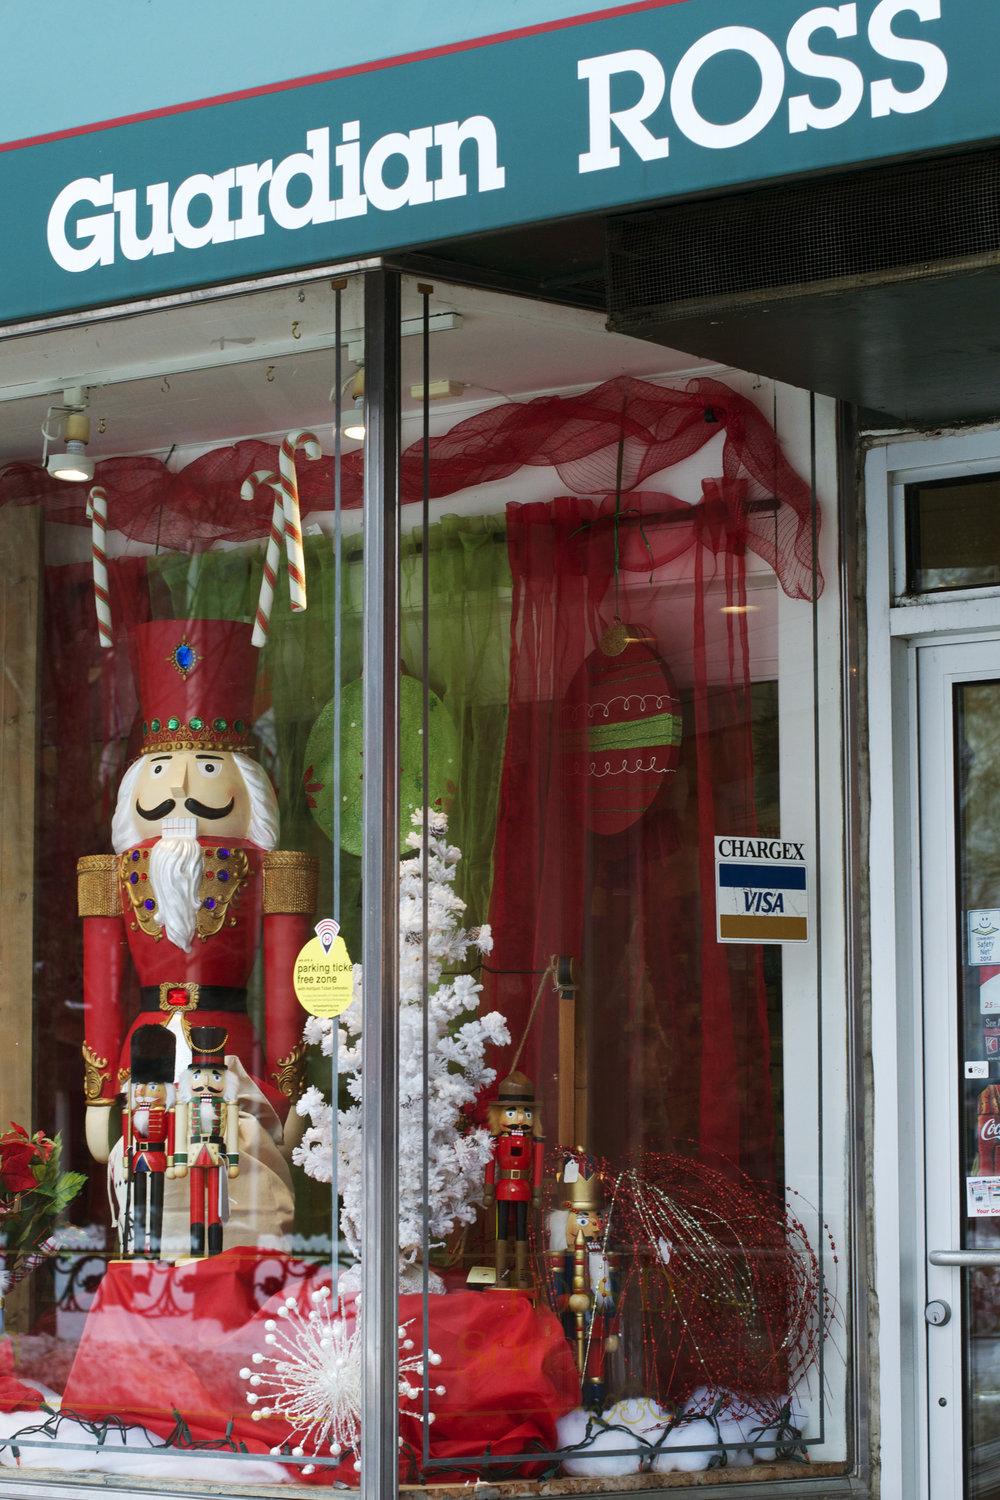 Guardian-Ross-Nutcracker-window.jpg